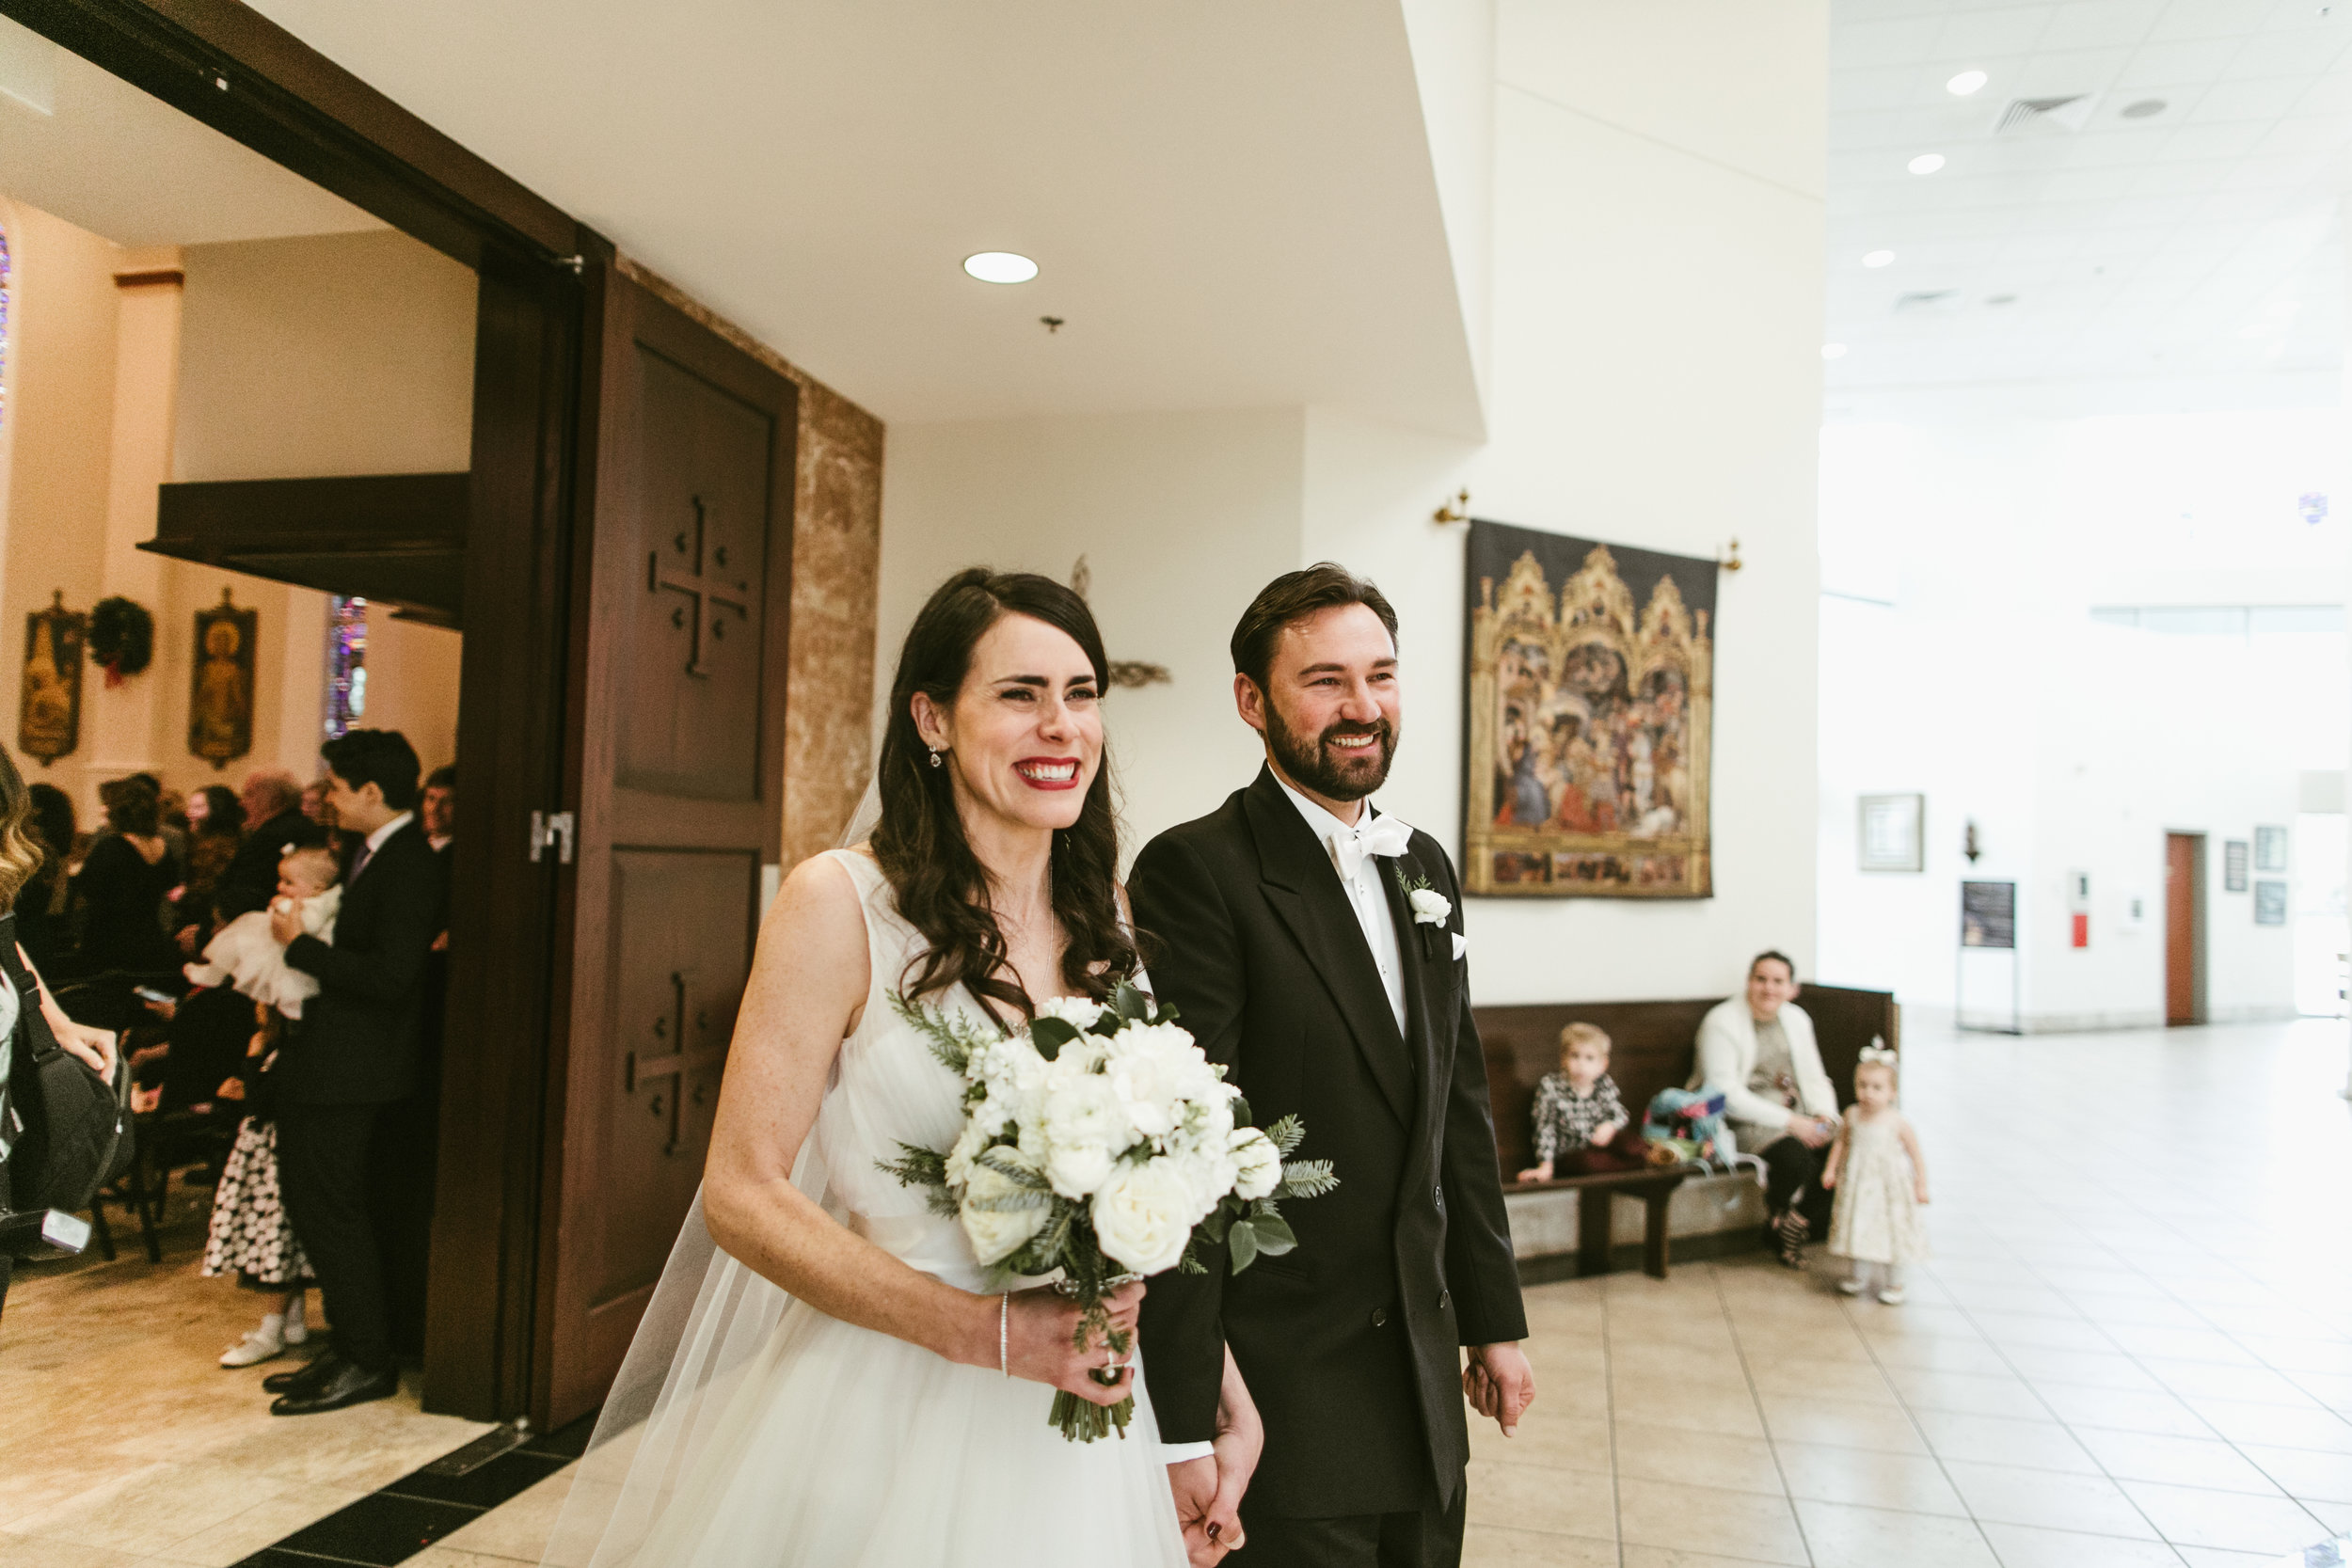 All smiles on the happiest day of our lives (so far): 12/29/16. Photo by  Leah Muse.